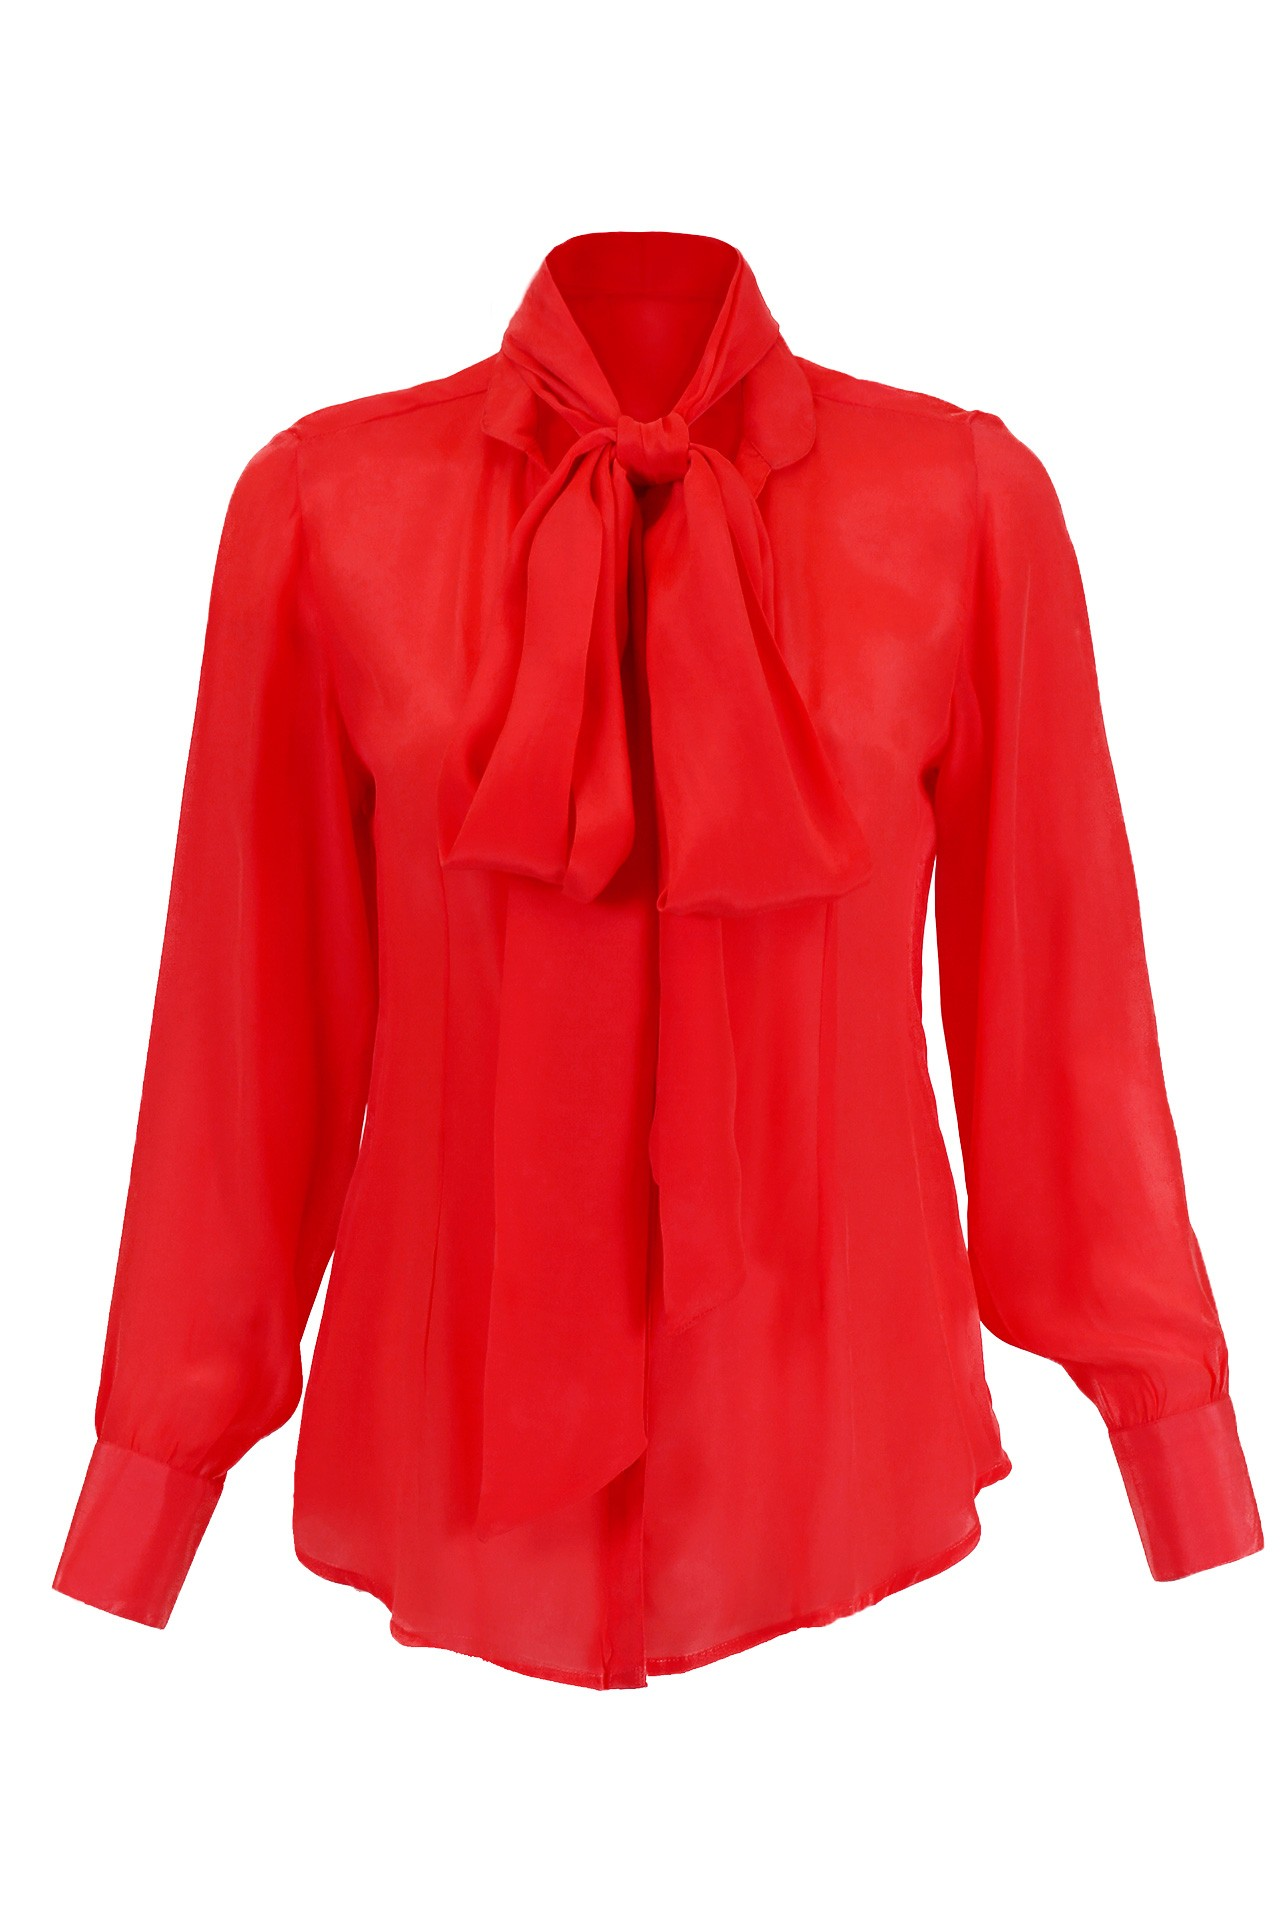 Red Blouse red blouse with bow. your browser does not support html5 video. FBQQFAN